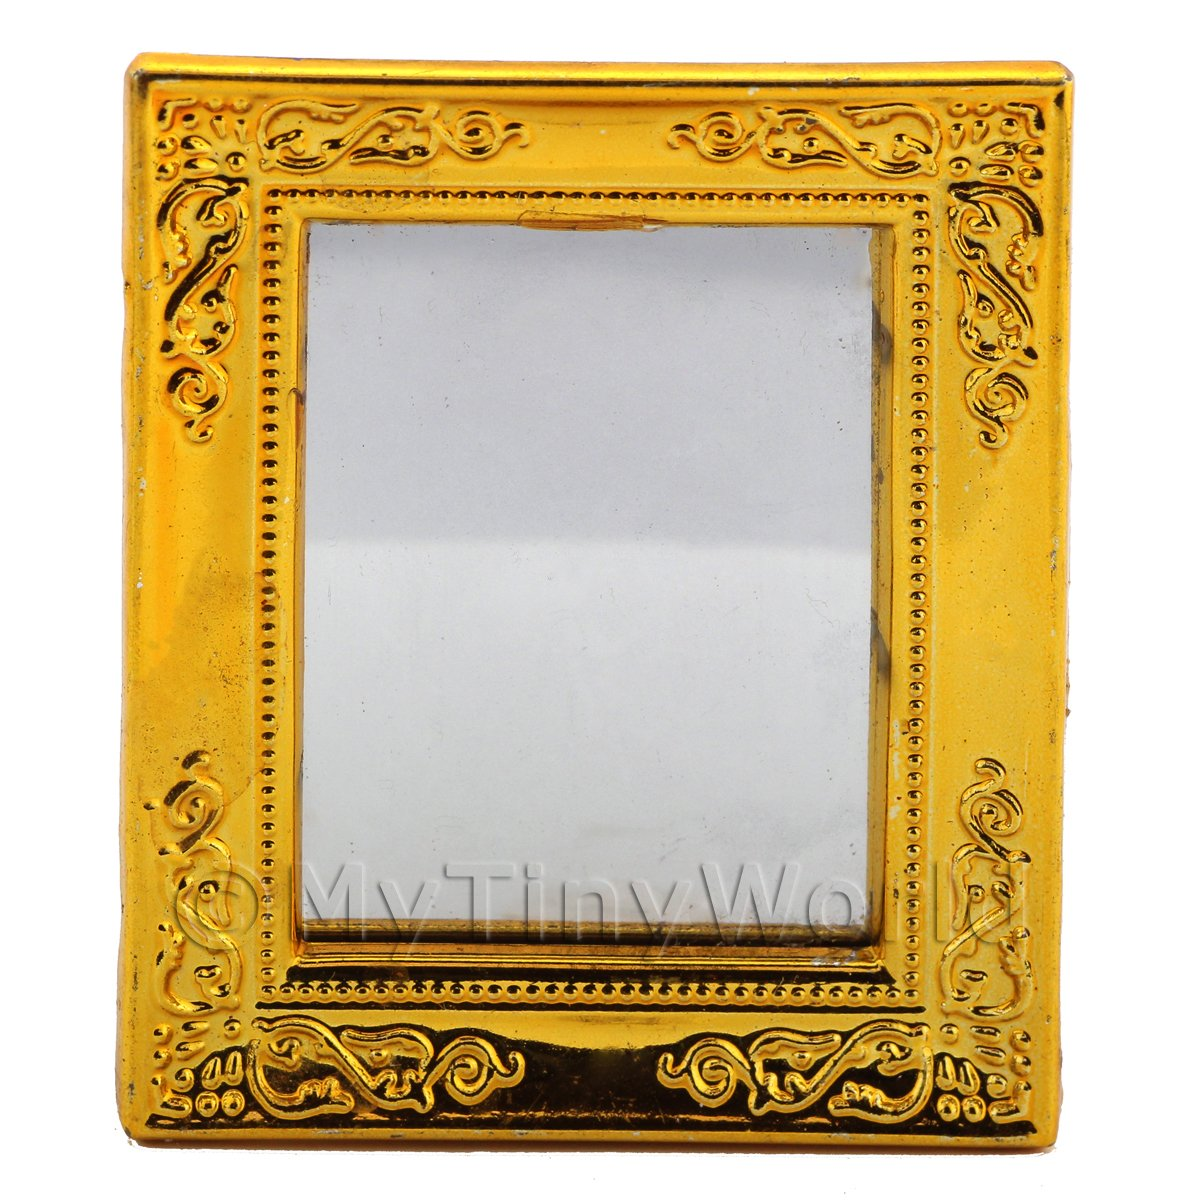 Dolls House Miniature Gilt-Edged Bright Gold Plastic Mirror